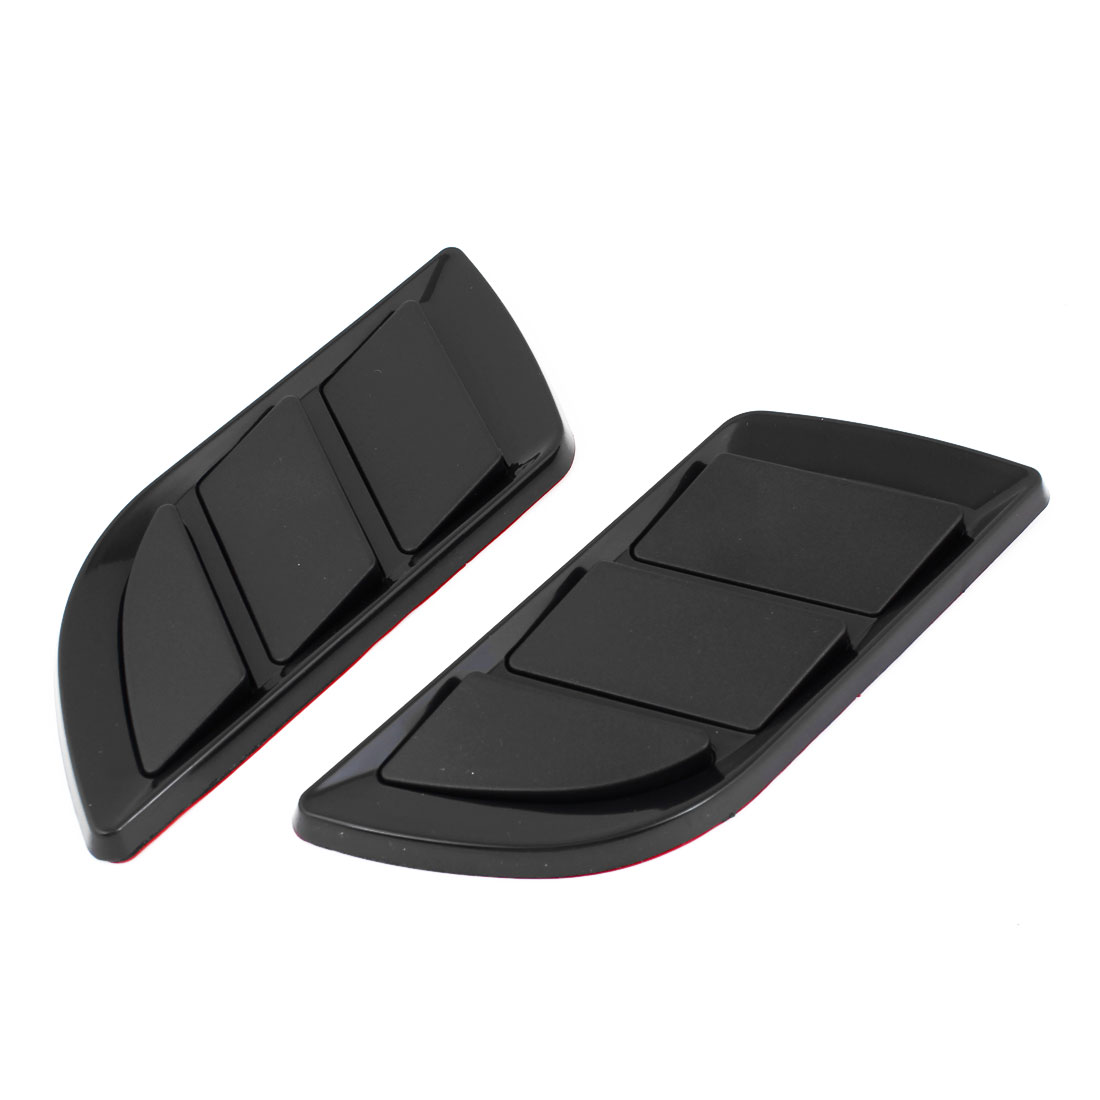 Black Plastic Air Flow Fender Sticker 2 Pcs for Car Auto